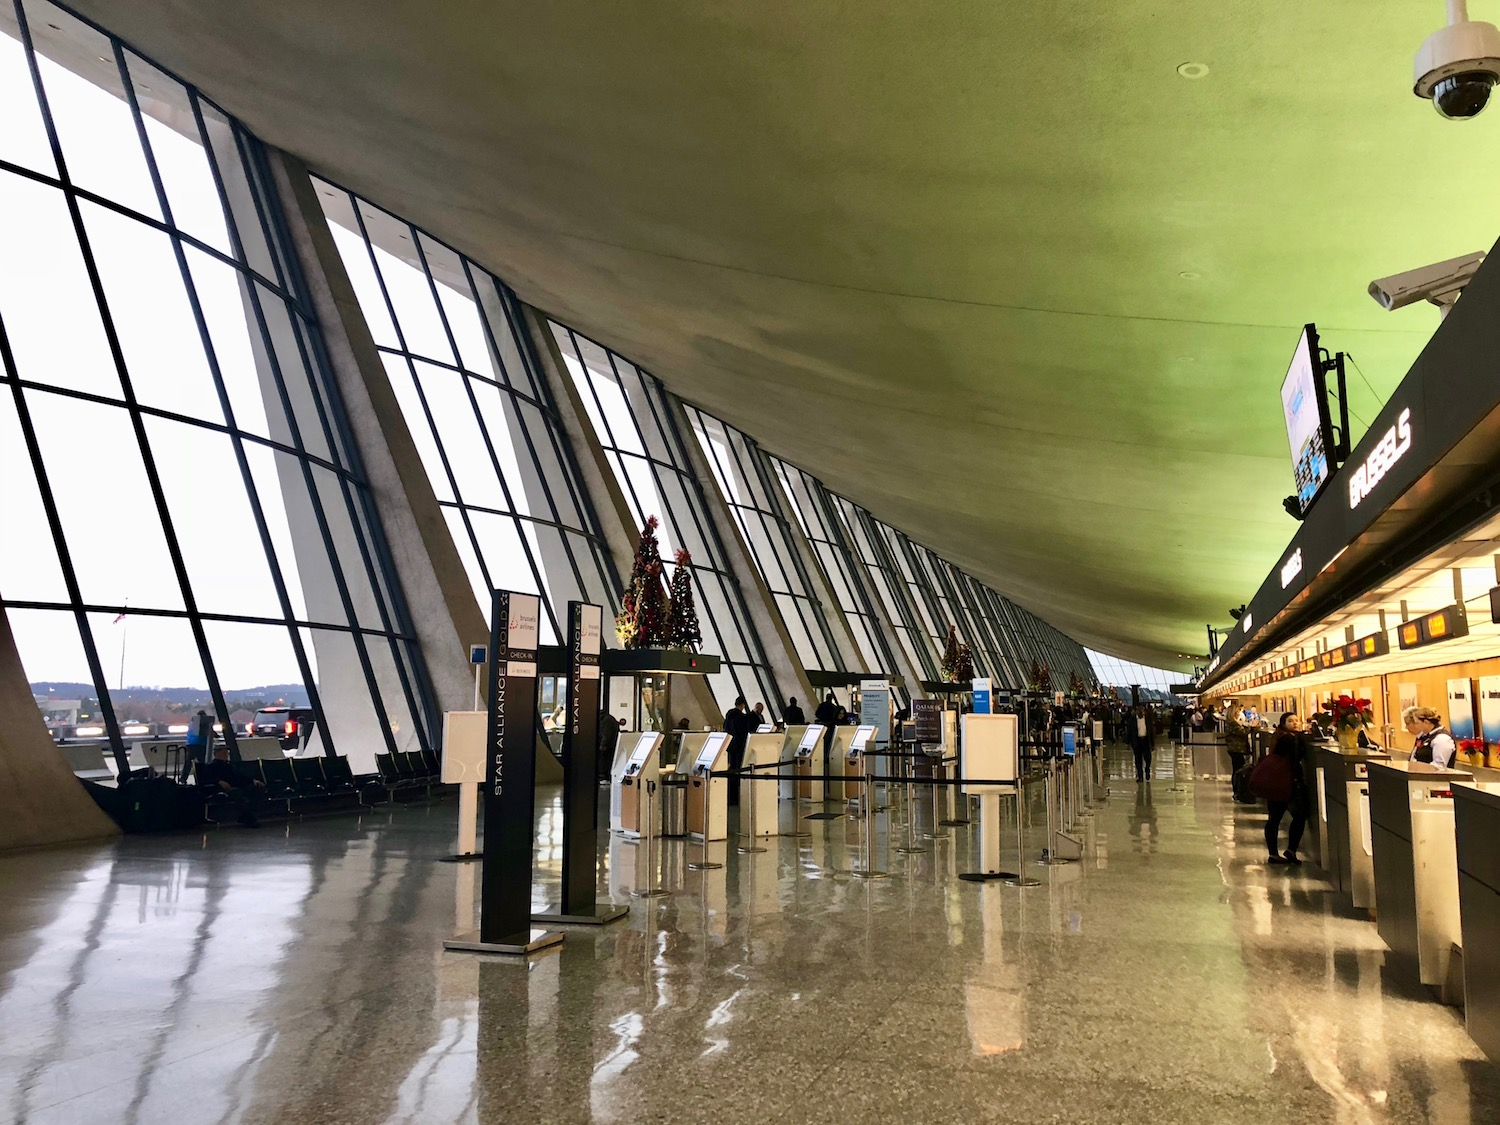 Dulles still boats one of the most undeniably cool main terminal designs. Dated, but still stunning.